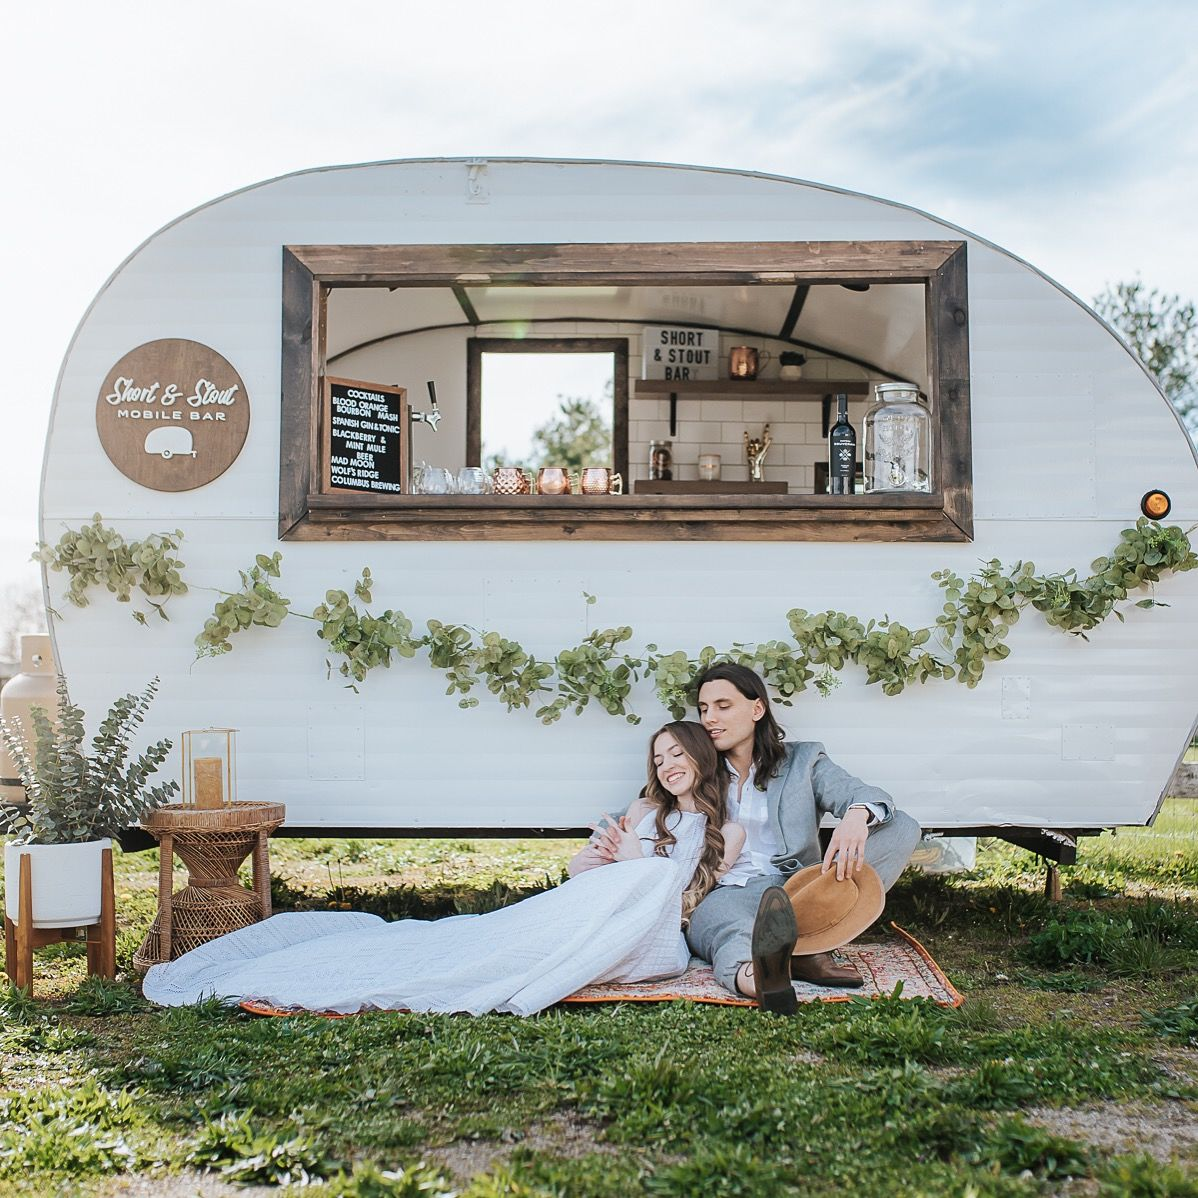 vintage mobile bar camper; one requirement for a meaningful wedding reception